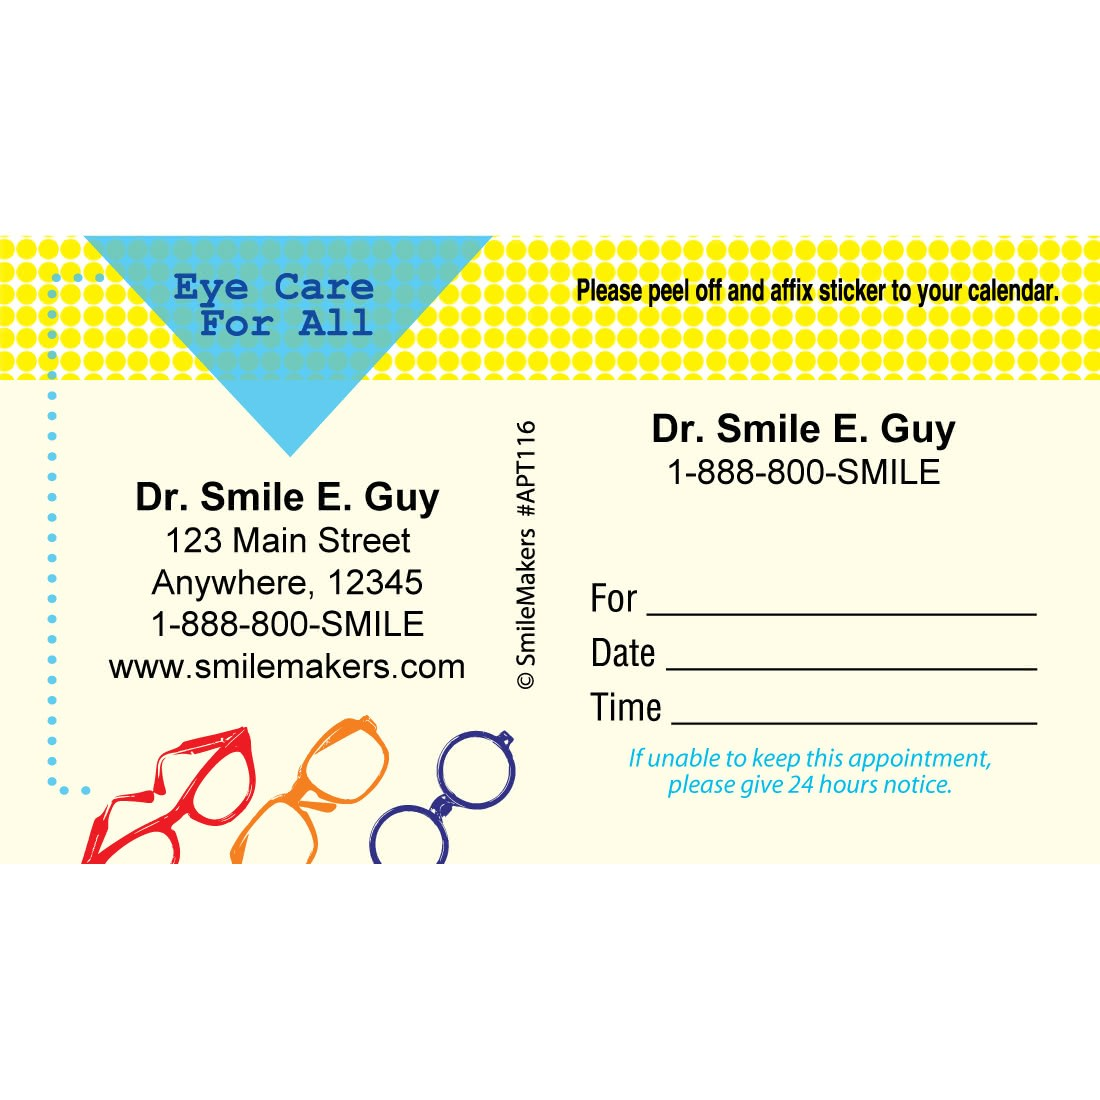 custom eye care for all sticker appointment cards - Appointment Cards